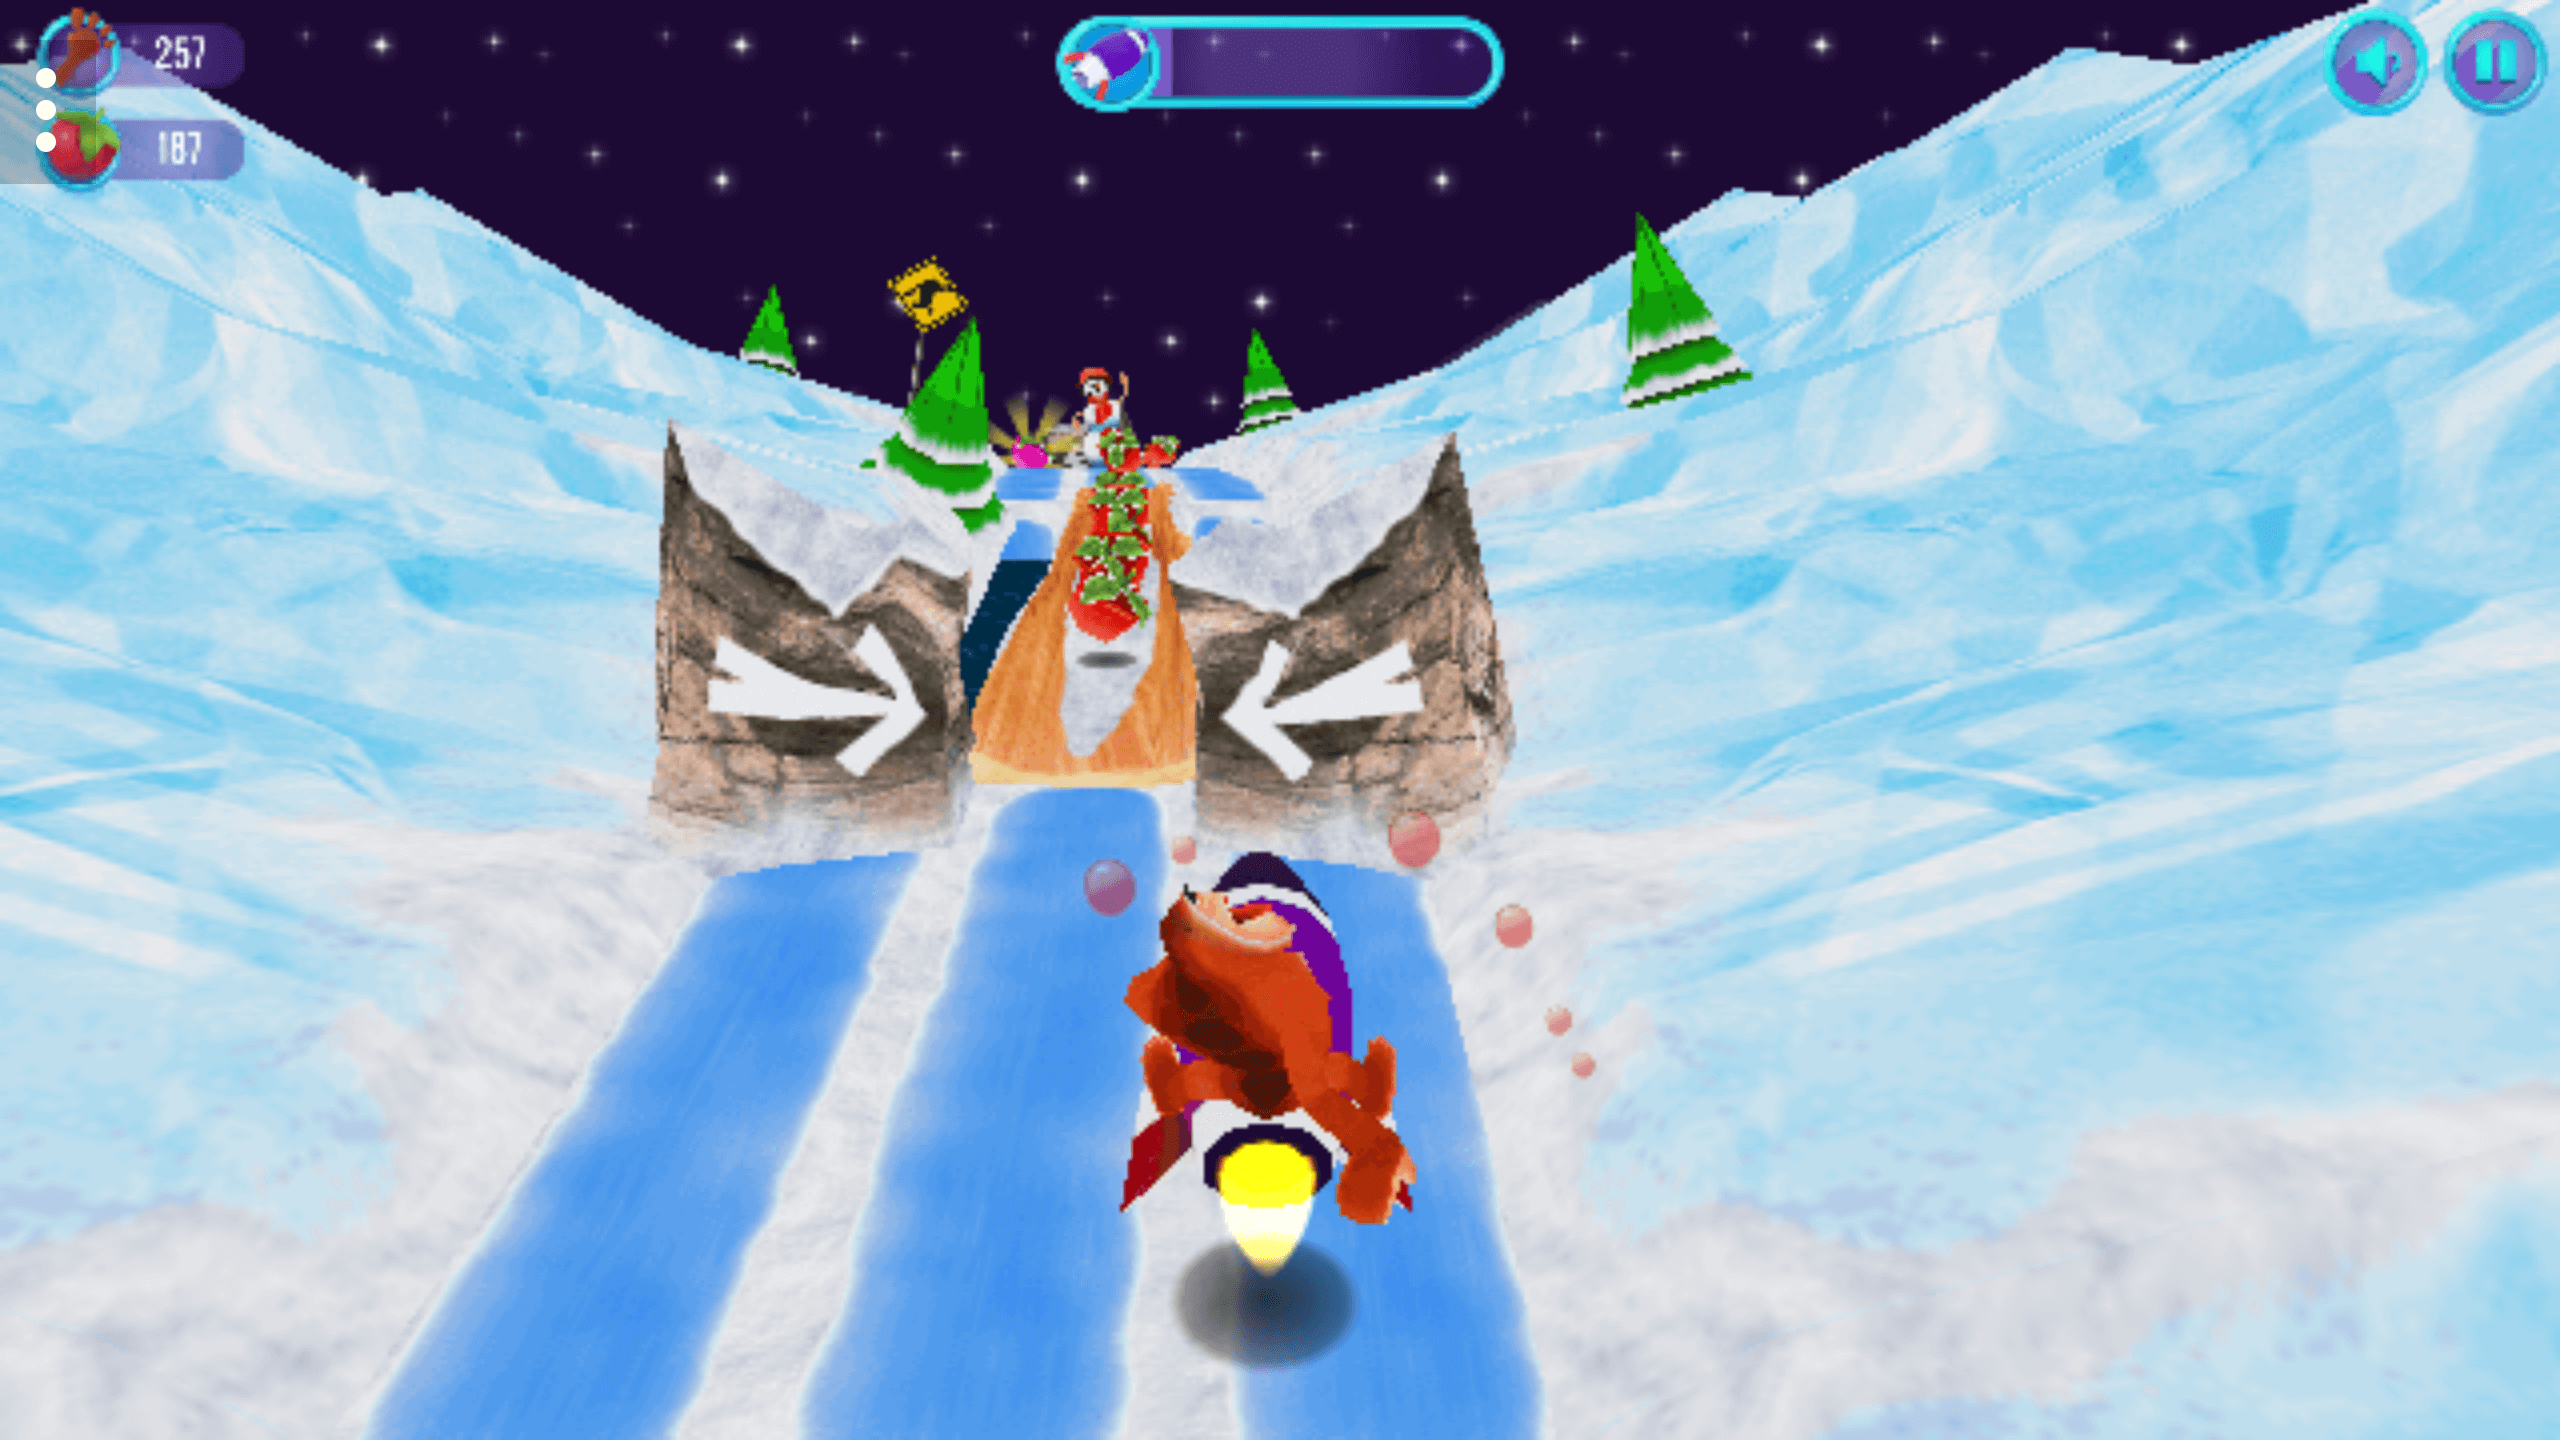 3D Platformer Screenshot